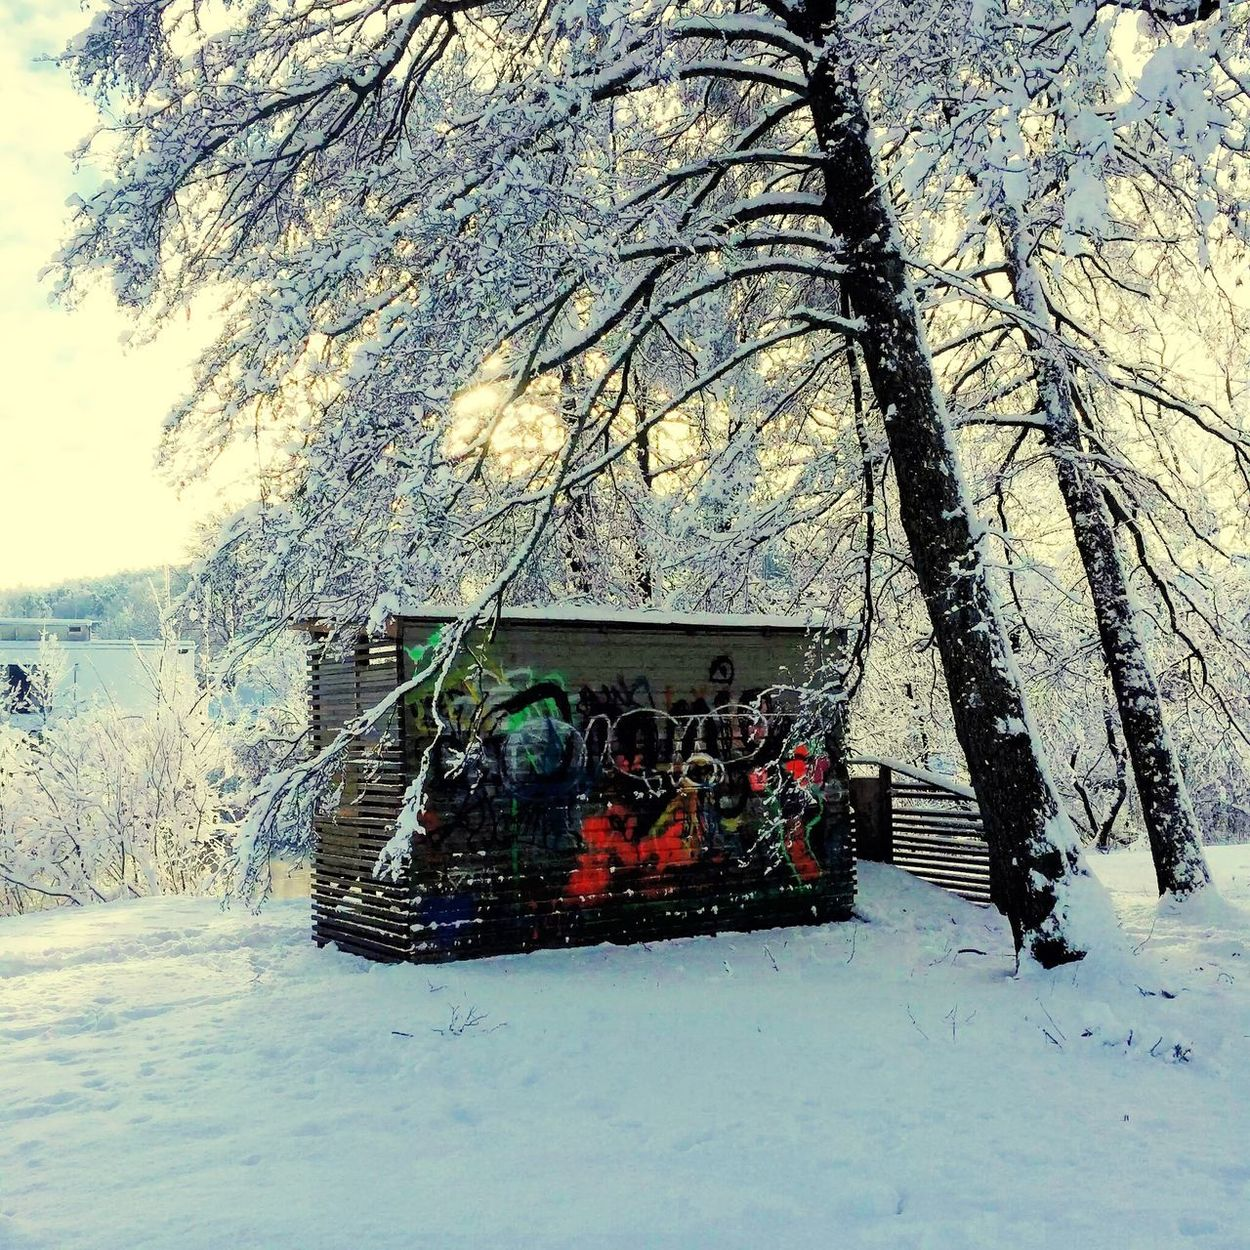 Graffiti In The Park wintertime snow White sun blue sky Crispy Snow Fresh Air Nature ❄